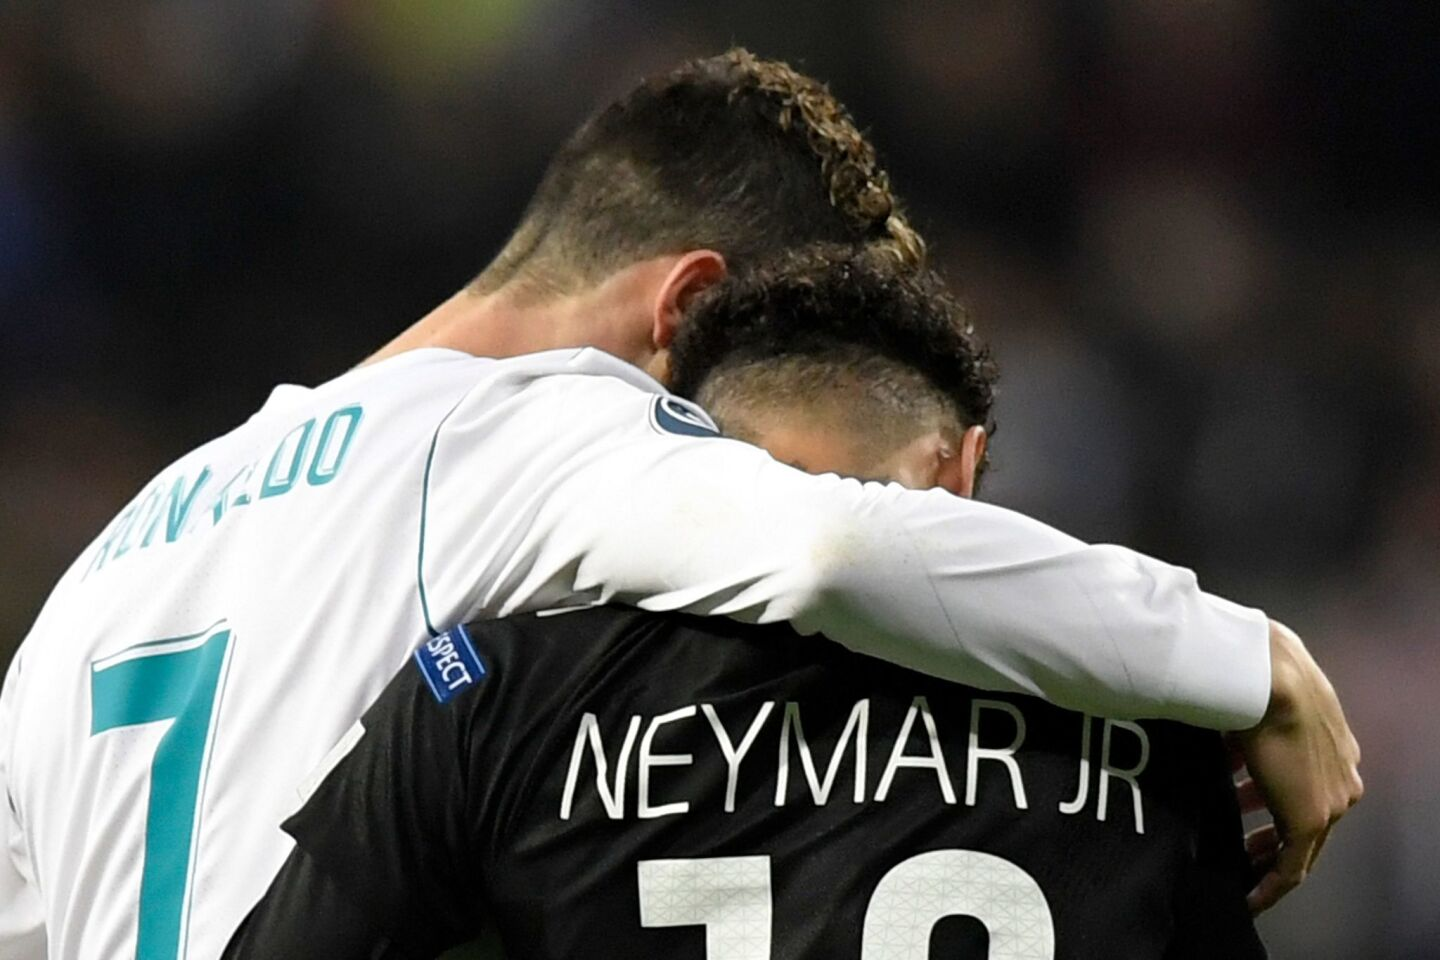 Real Madrid's Portuguese forward Cristiano Ronaldo (L) and Paris Saint-Germain's Brazilian forward Neymar leave the pitch during the UEFA Champions League round of sixteen first leg football match Real Madrid CF against Paris Saint-Germain (PSG) at the Santiago Bernabeu stadium in Madrid on February 14, 2018. / AFP PHOTO / GABRIEL BOUYSGABRIEL BOUYS/AFP/Getty Images ** OUTS - ELSENT, FPG, CM - OUTS * NM, PH, VA if sourced by CT, LA or MoD **